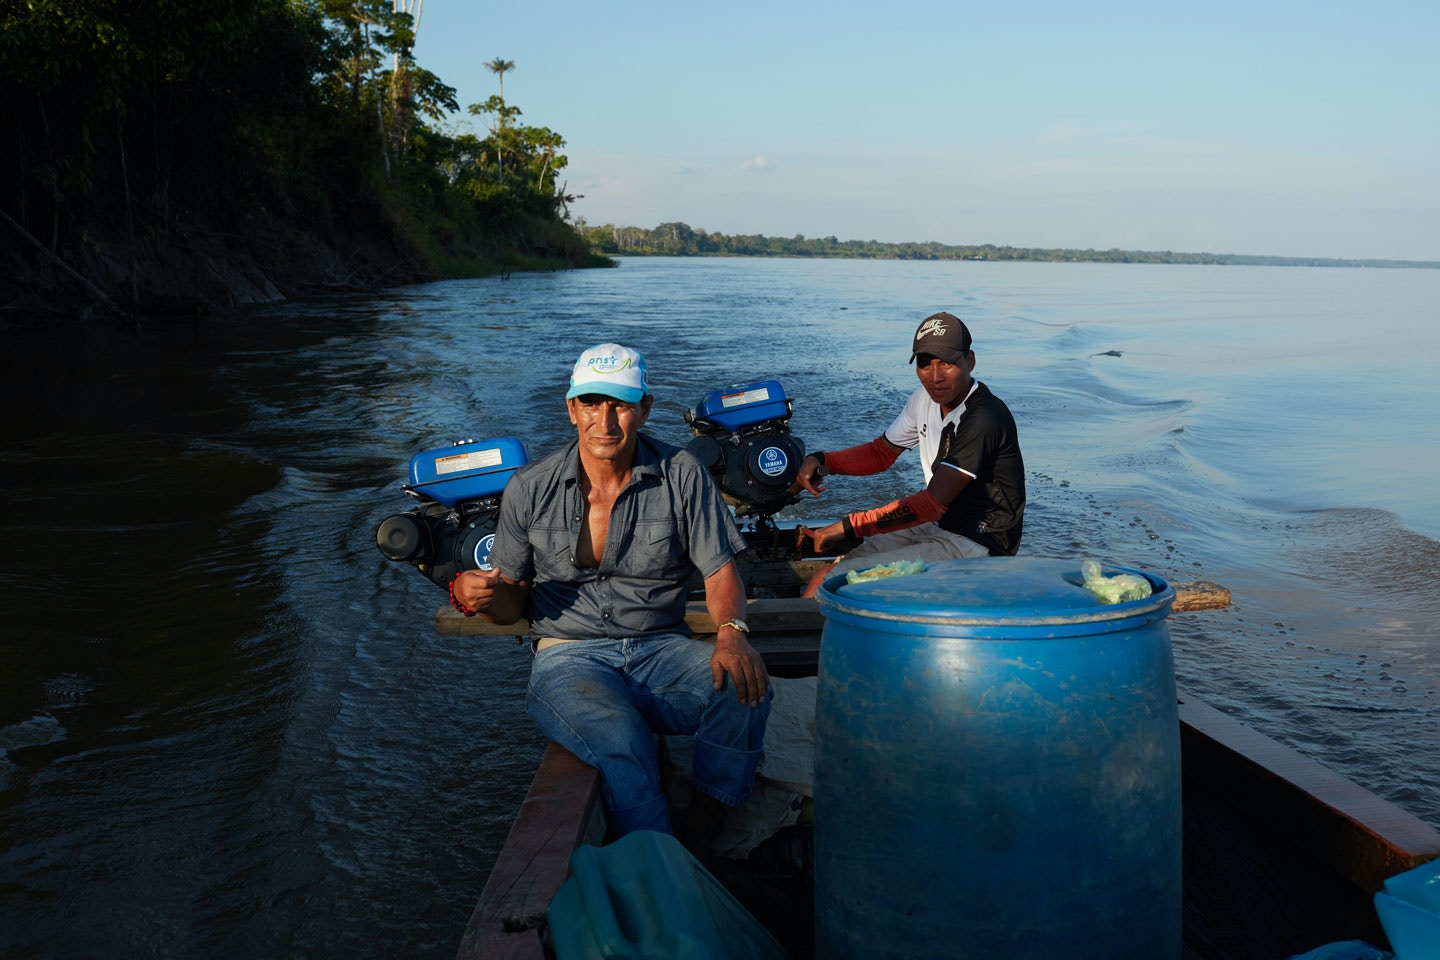 "DOS DE MAYO, PERU – JULY 16, 2017: Apu Alfonso Lopez Tejare, pilots a boat from Naulta to his home village of Dos de Mayo on the Marañón River in the State of Loreto, Puru. Alfonso Lopez Tejare is the leader of his community, he say's ""In October 2000, there was a great spill near Saramuro in the Marañón. A black stain covered the river all the way to Nauta, several hours by boat. The company hired us to collect the oil with sticks and mugs and bury it. They gave us no protection. Weeks later, flood season arrived. Our communities and farmlands were flooded with petroleum. The people dug holes and tried to bury it.Even then, we didn't know much about oil. We didn't understand when the media said it would take the heavy metals 30 years to settle in the bottom of the river. But we noticed the fish in the streams were becoming thin and malnourished. Their eggs were small. Before the spill, we would drop a net and catch half-a-ton of fish. After, we caught maybe 30 kilograms of sick fish. People began to be ill. Strange bumps and rashes. Children no longer learned well in school. They had stomachaches and headaches. The traditional medicines did not cure us. We went to the health centers in the cities, but there were no remedies."" July 16, 2017. (Photo by Ben Depp)"